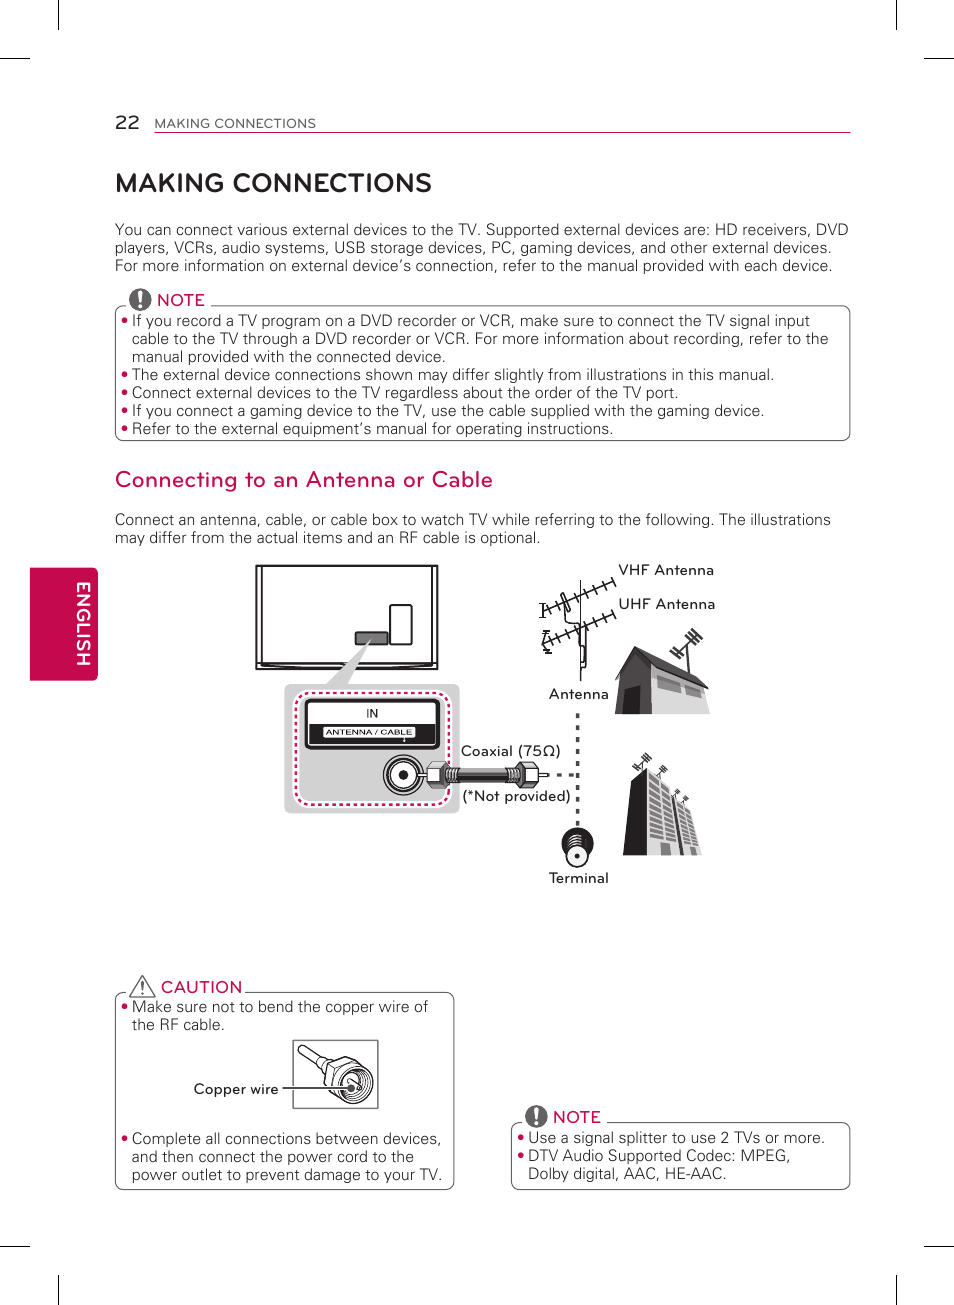 Making Connections Connecting To An Antenna Or Cable Lg 55ub8500 Tv Signal Splitter Wiring Diagram User Manual Page 22 40